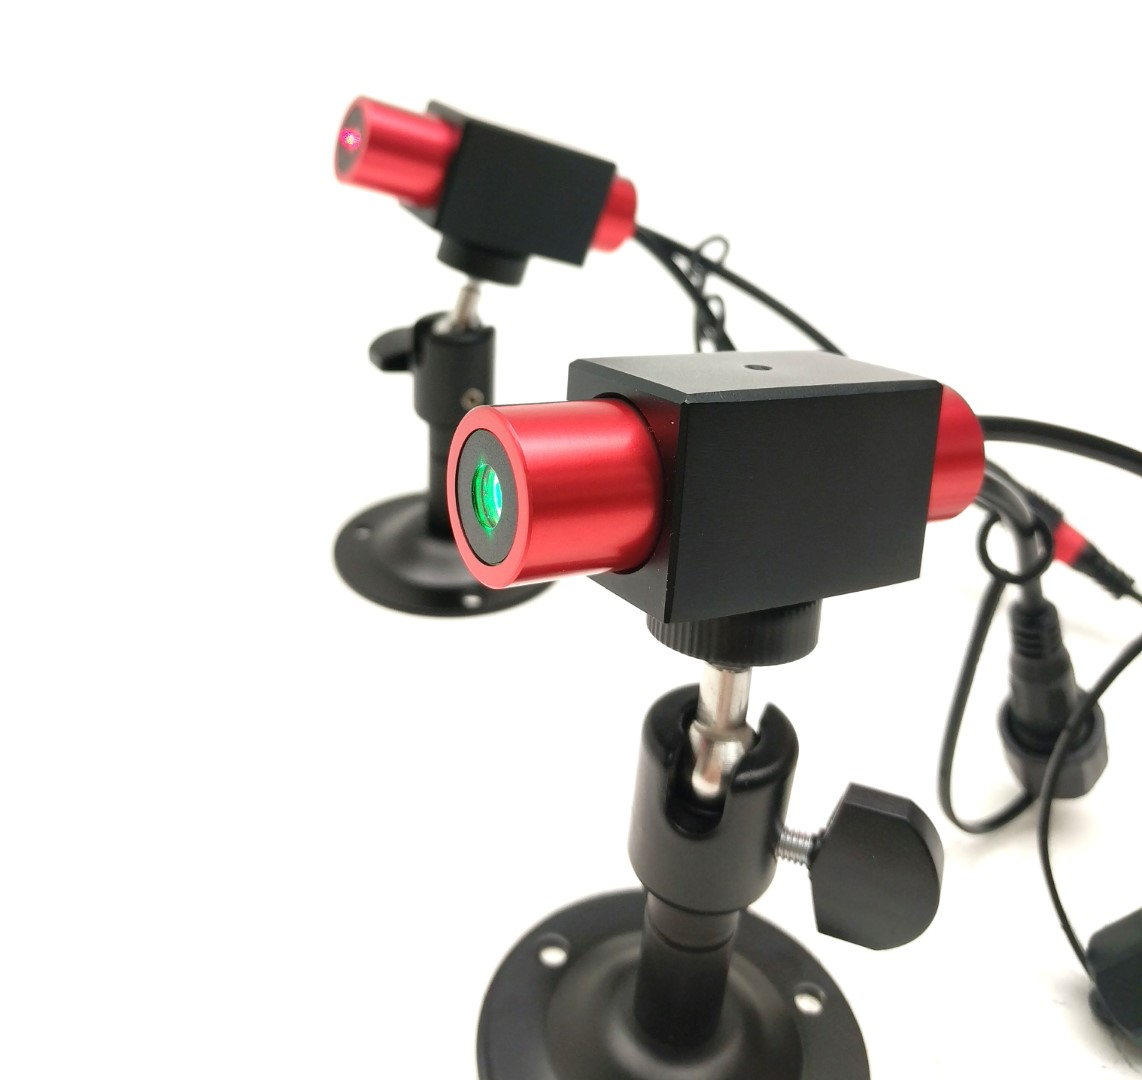 5 mW 635 nm Red Premium Structured Line No Central Dot Laser, 30° fan angle, adjustable focus, TTL+, Sealed IP67